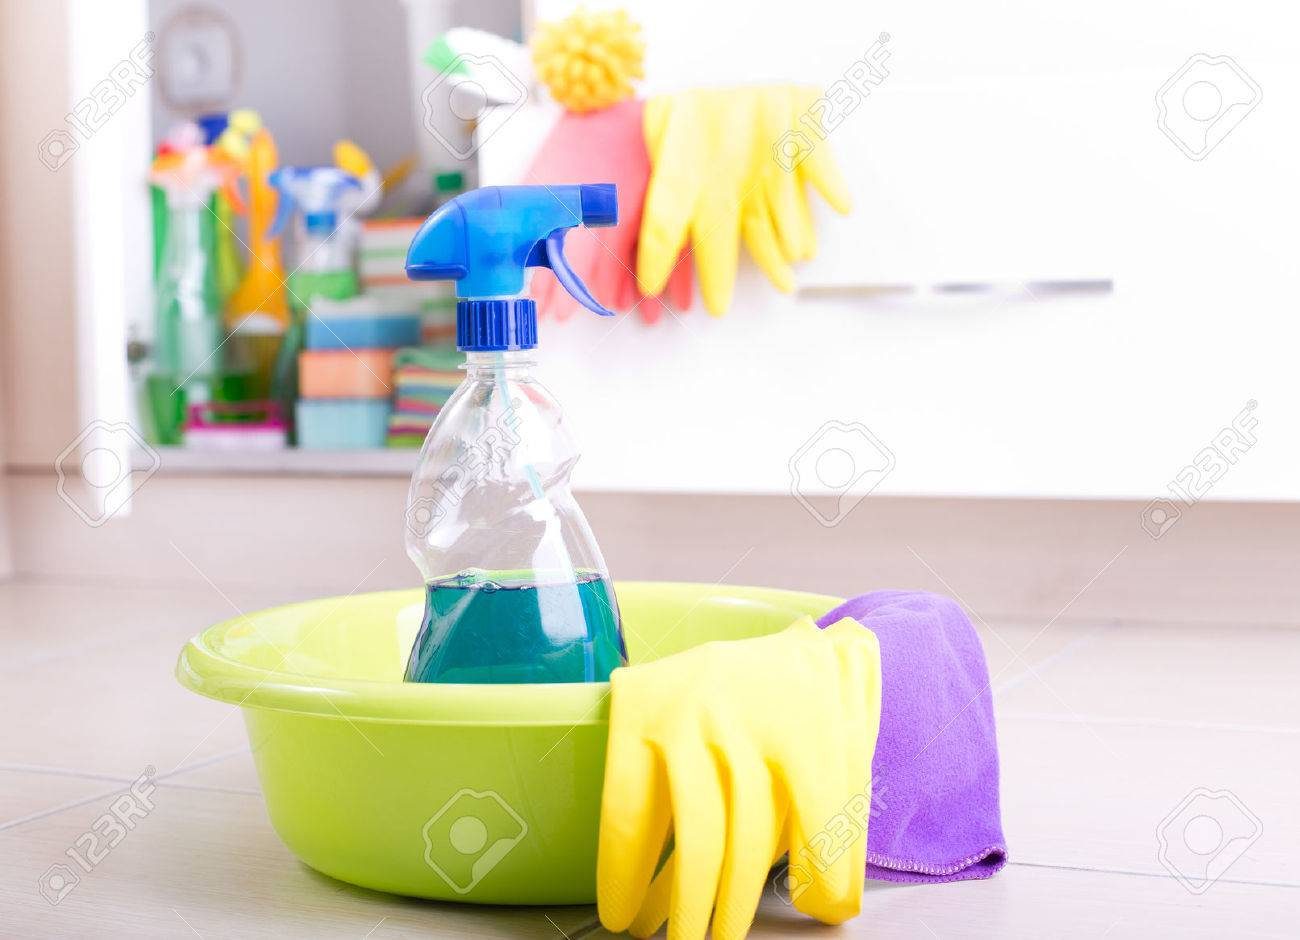 Spray Bottle And Cleaning Tools In Washbasin On The Kitchen Floor ...